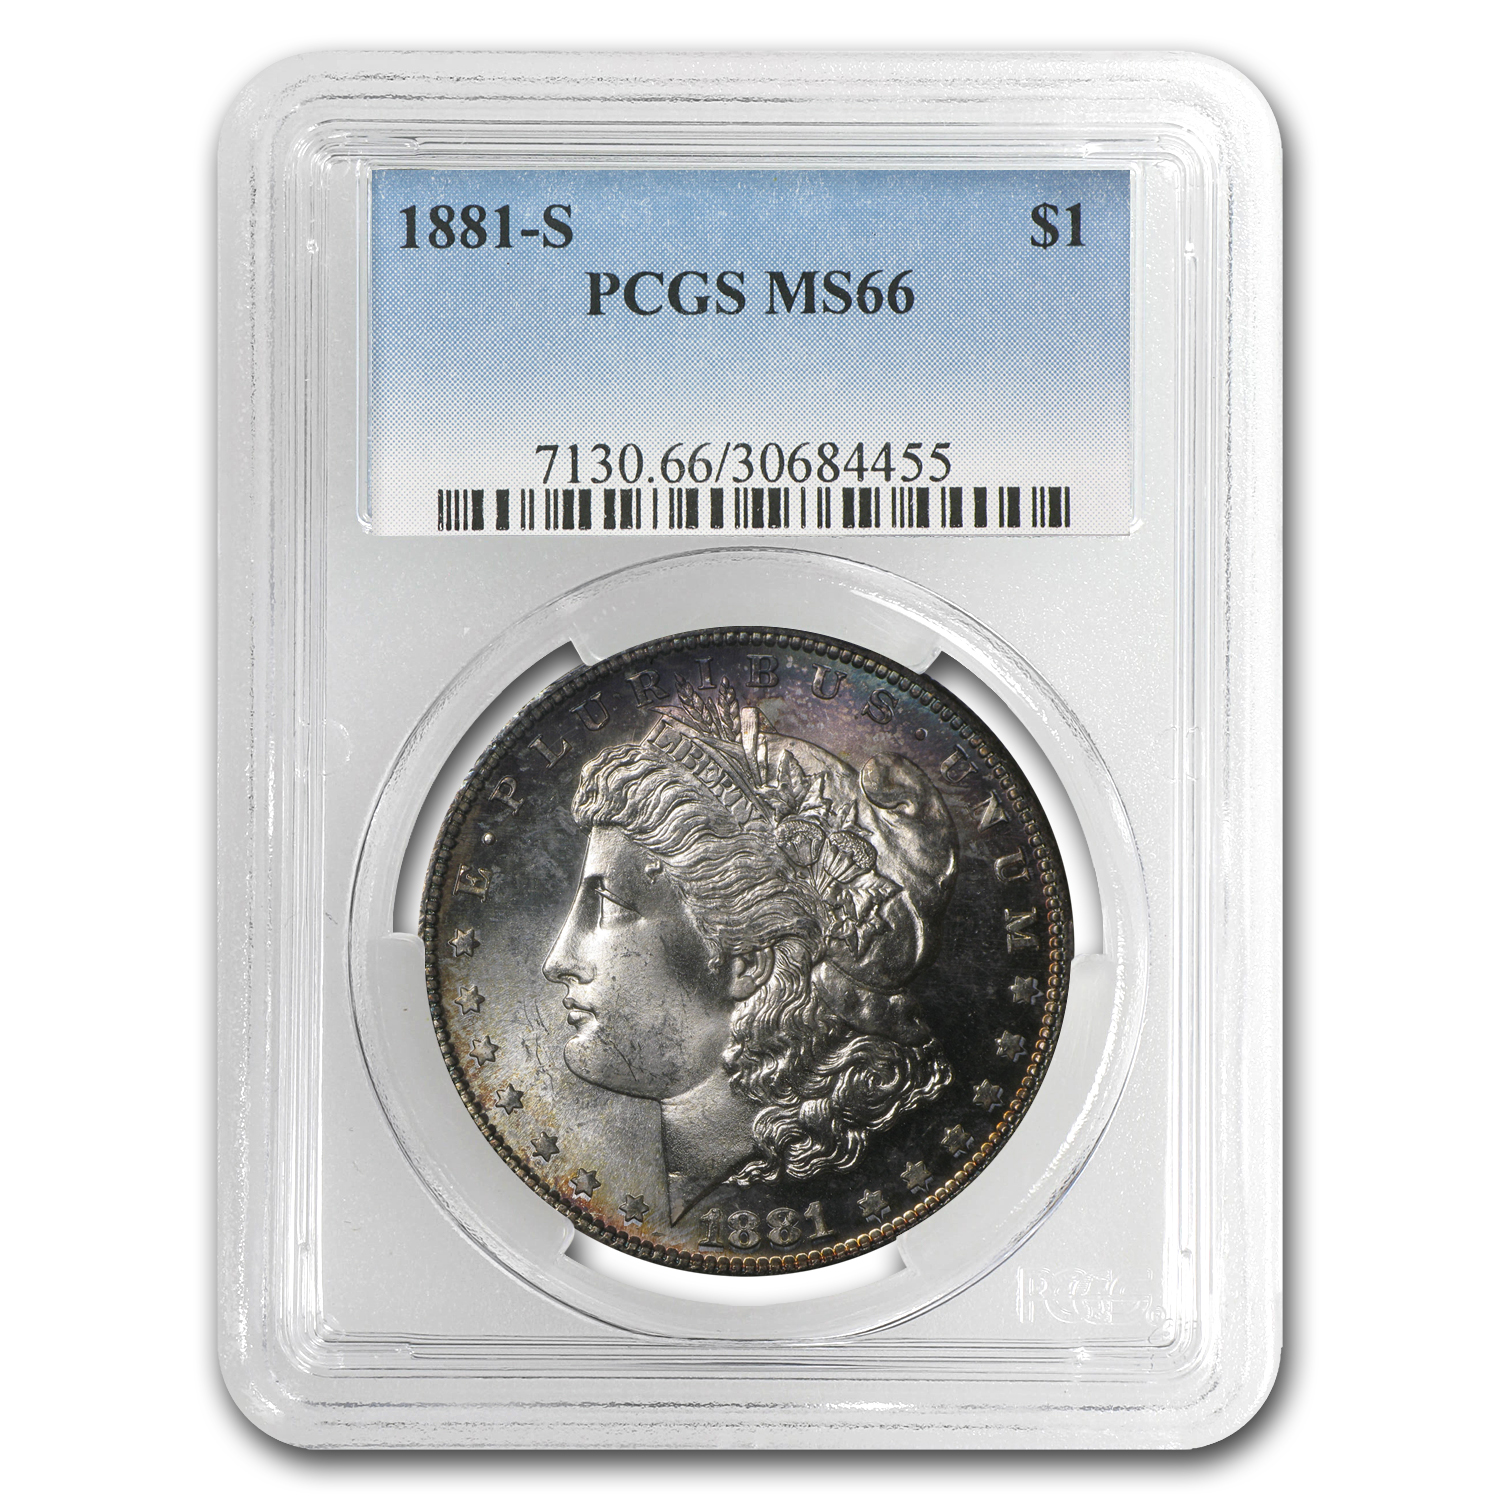 1881-S Morgan Dollar MS-66 PCGS (Plum Bowed Toning)